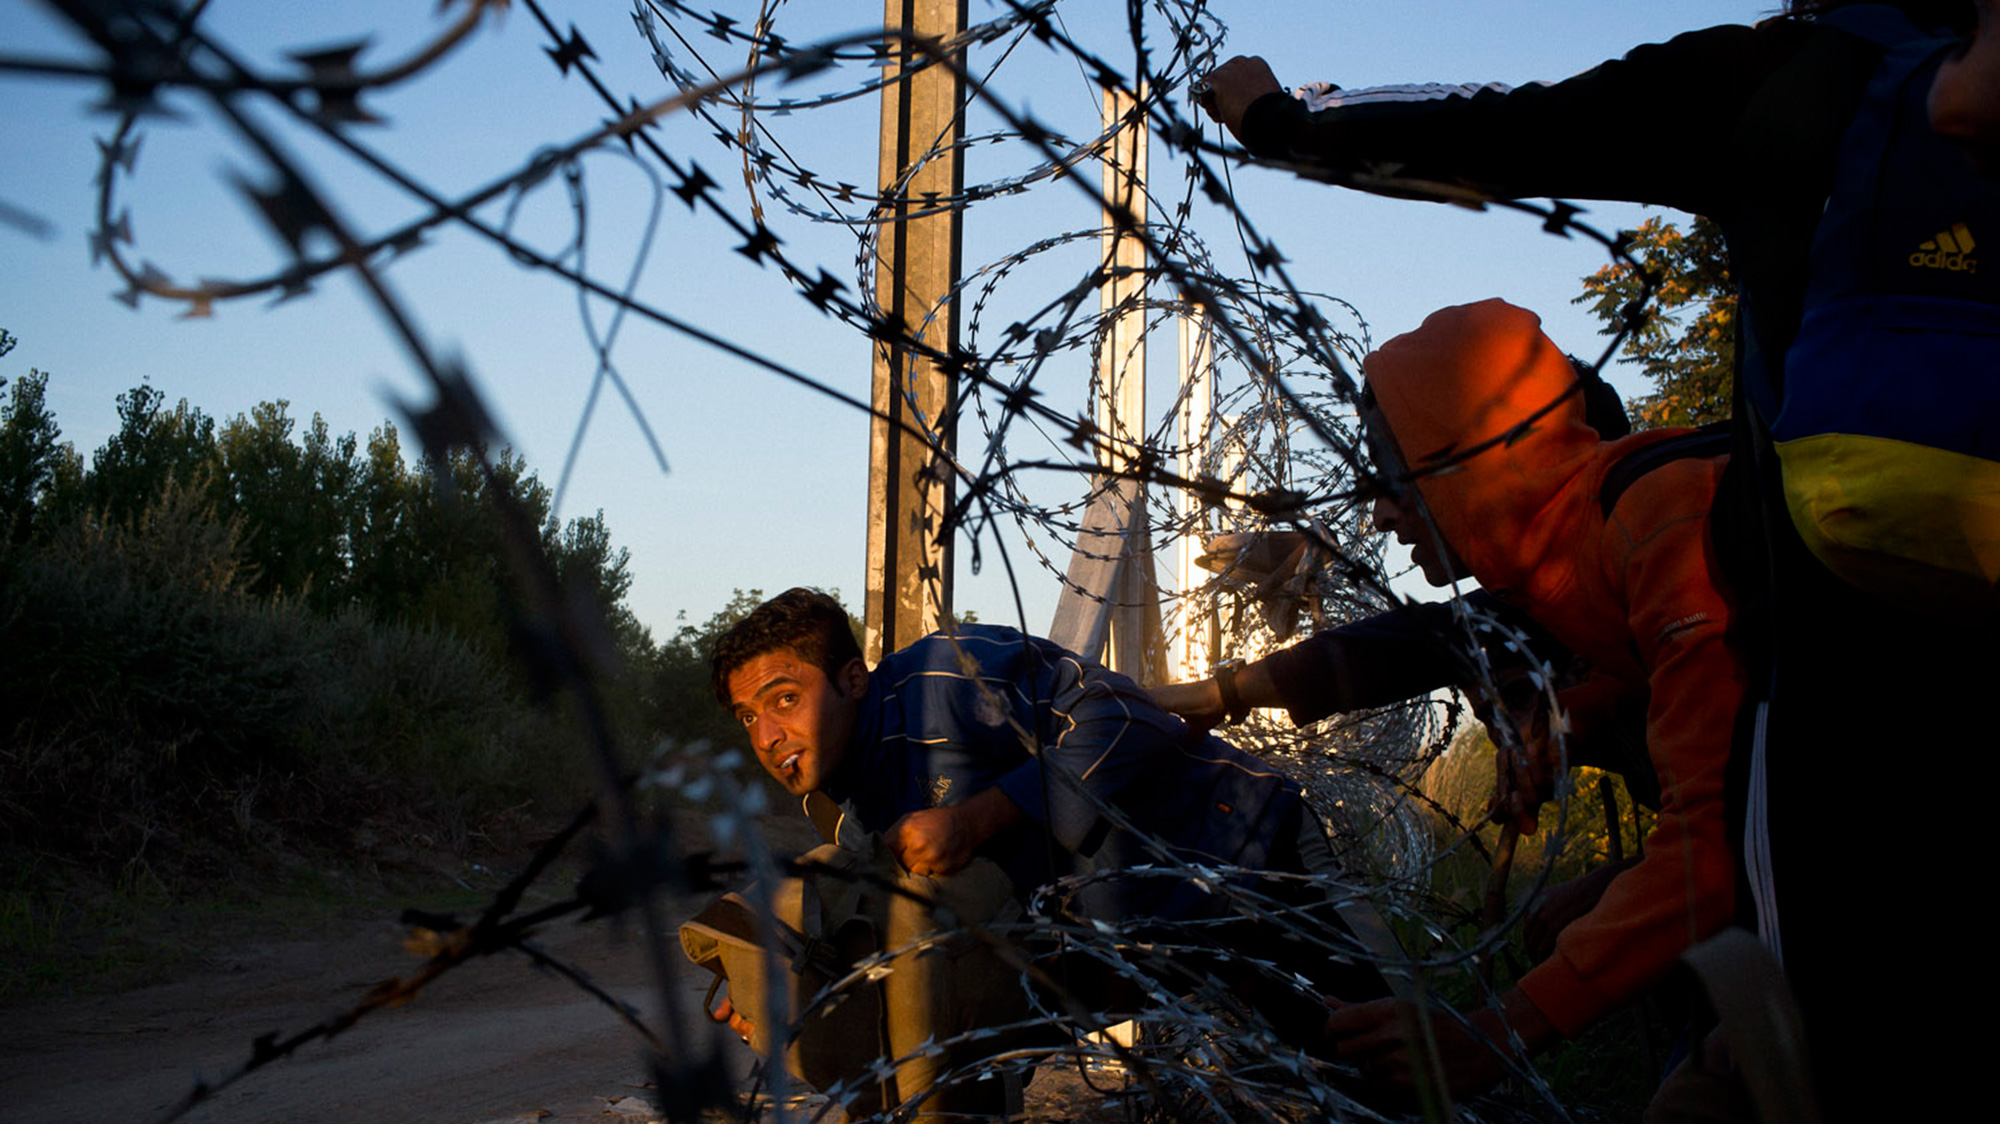 Refugees crossing through barbed wire fence.